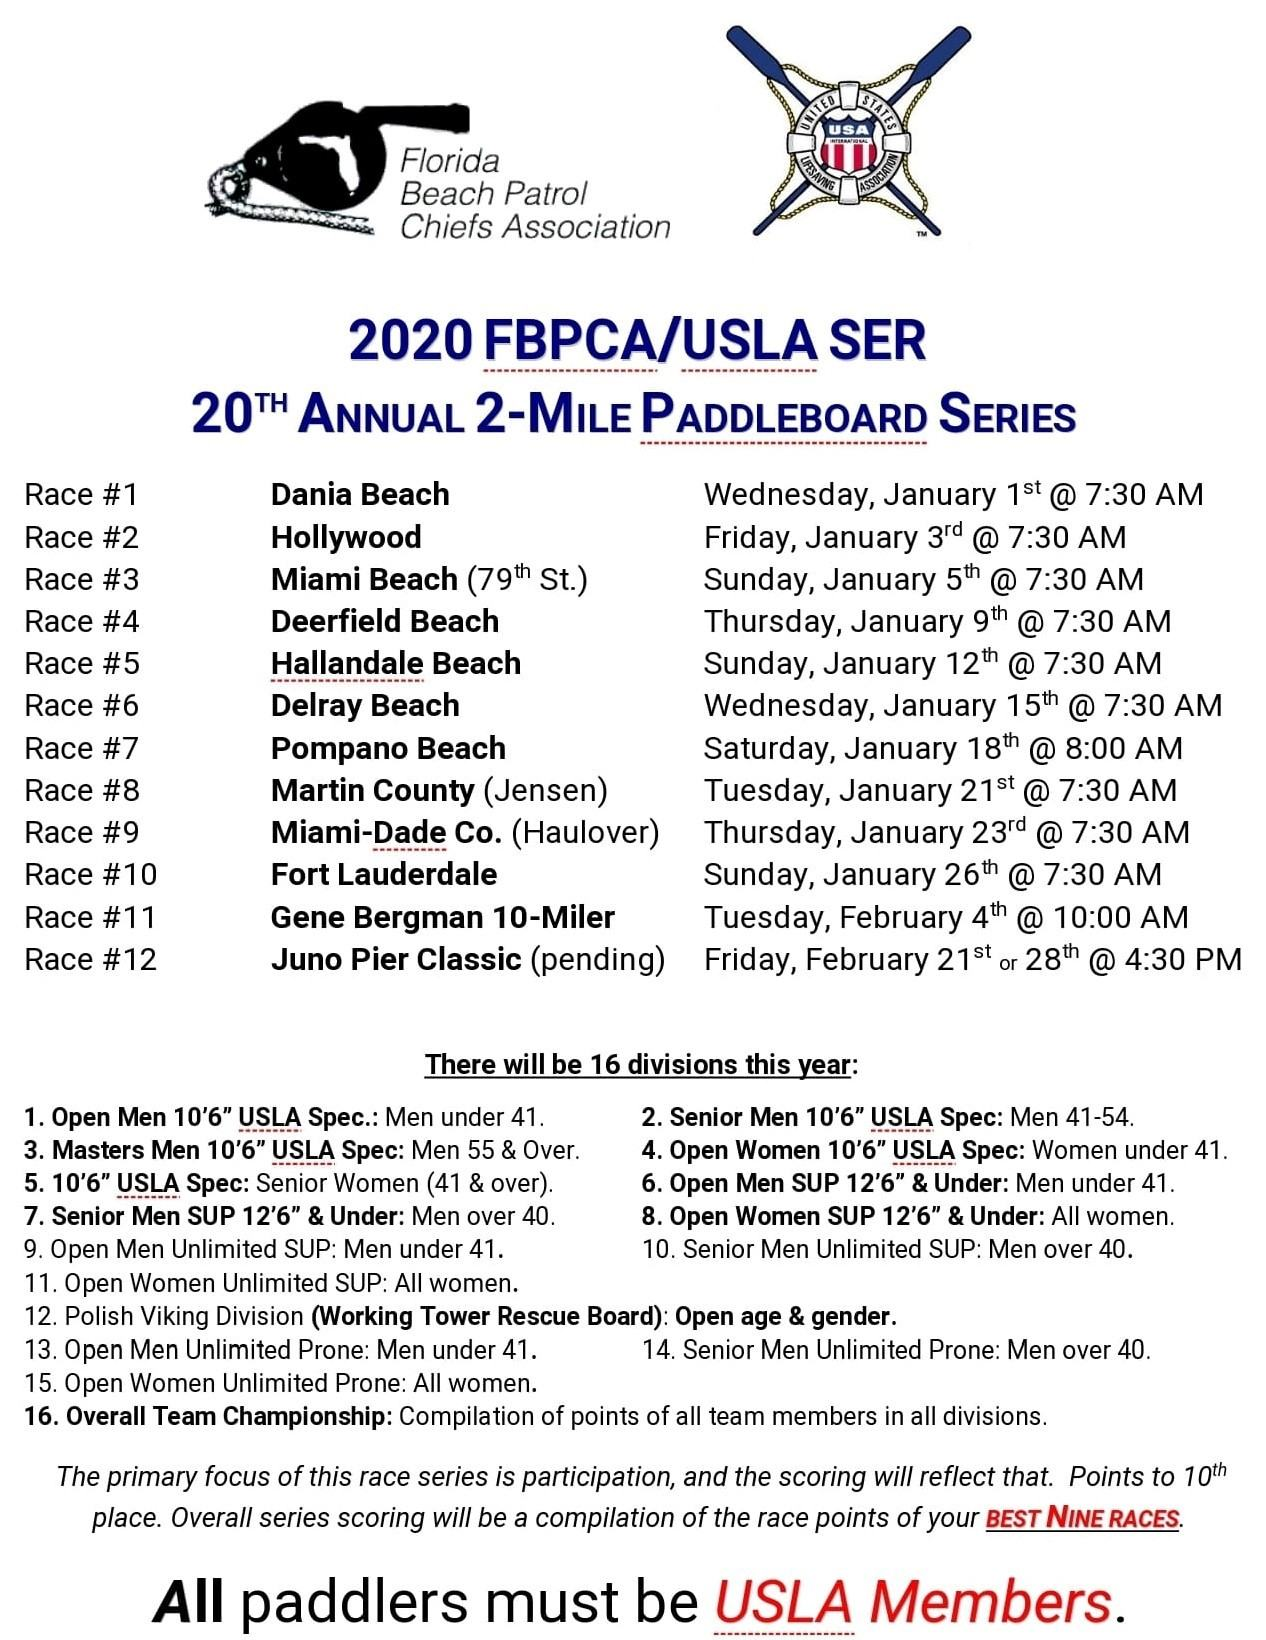 Calendar of events for USLA in 2020